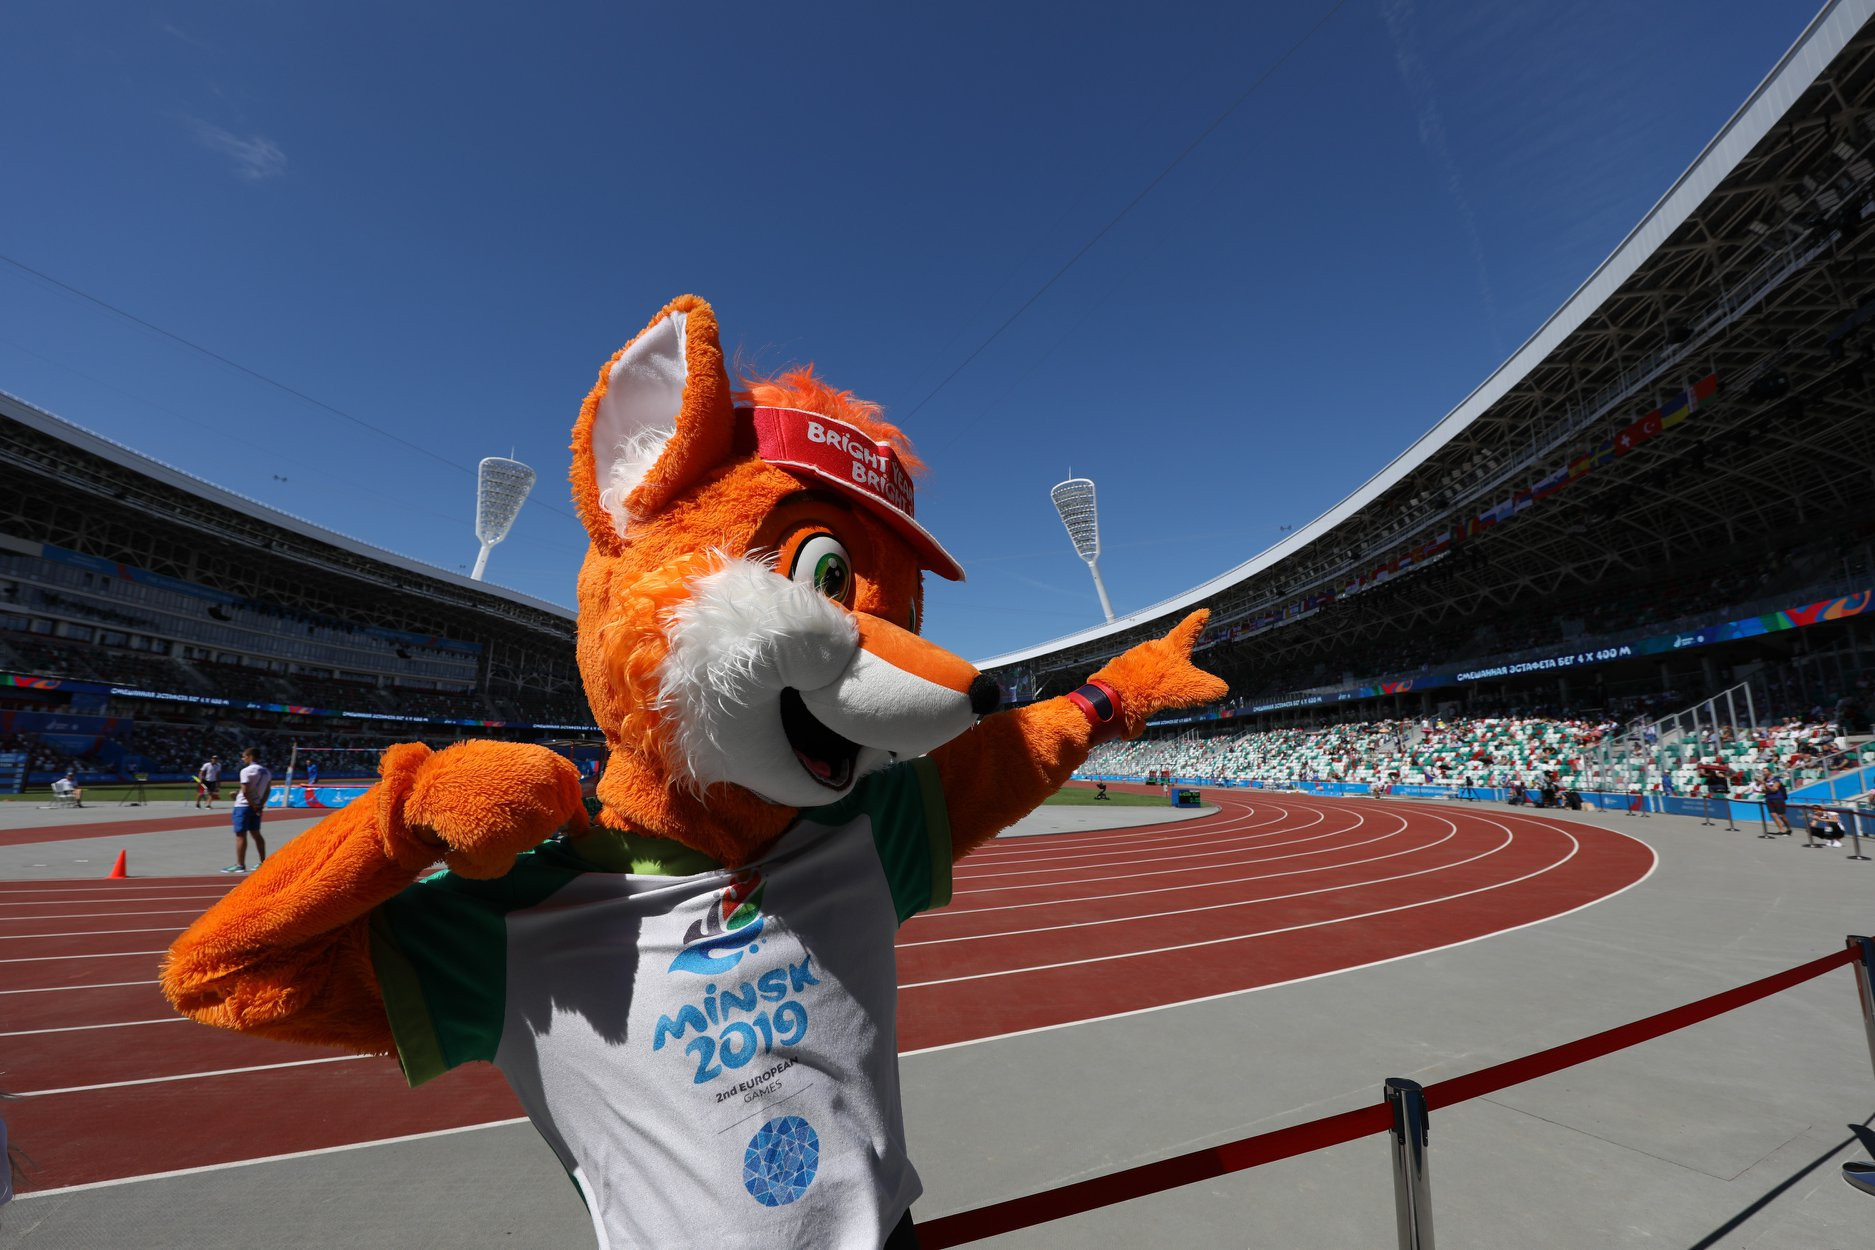 Minsk 2019 mascot Lesik the Fox was on hand to warm up the crowd ©Minsk 2019